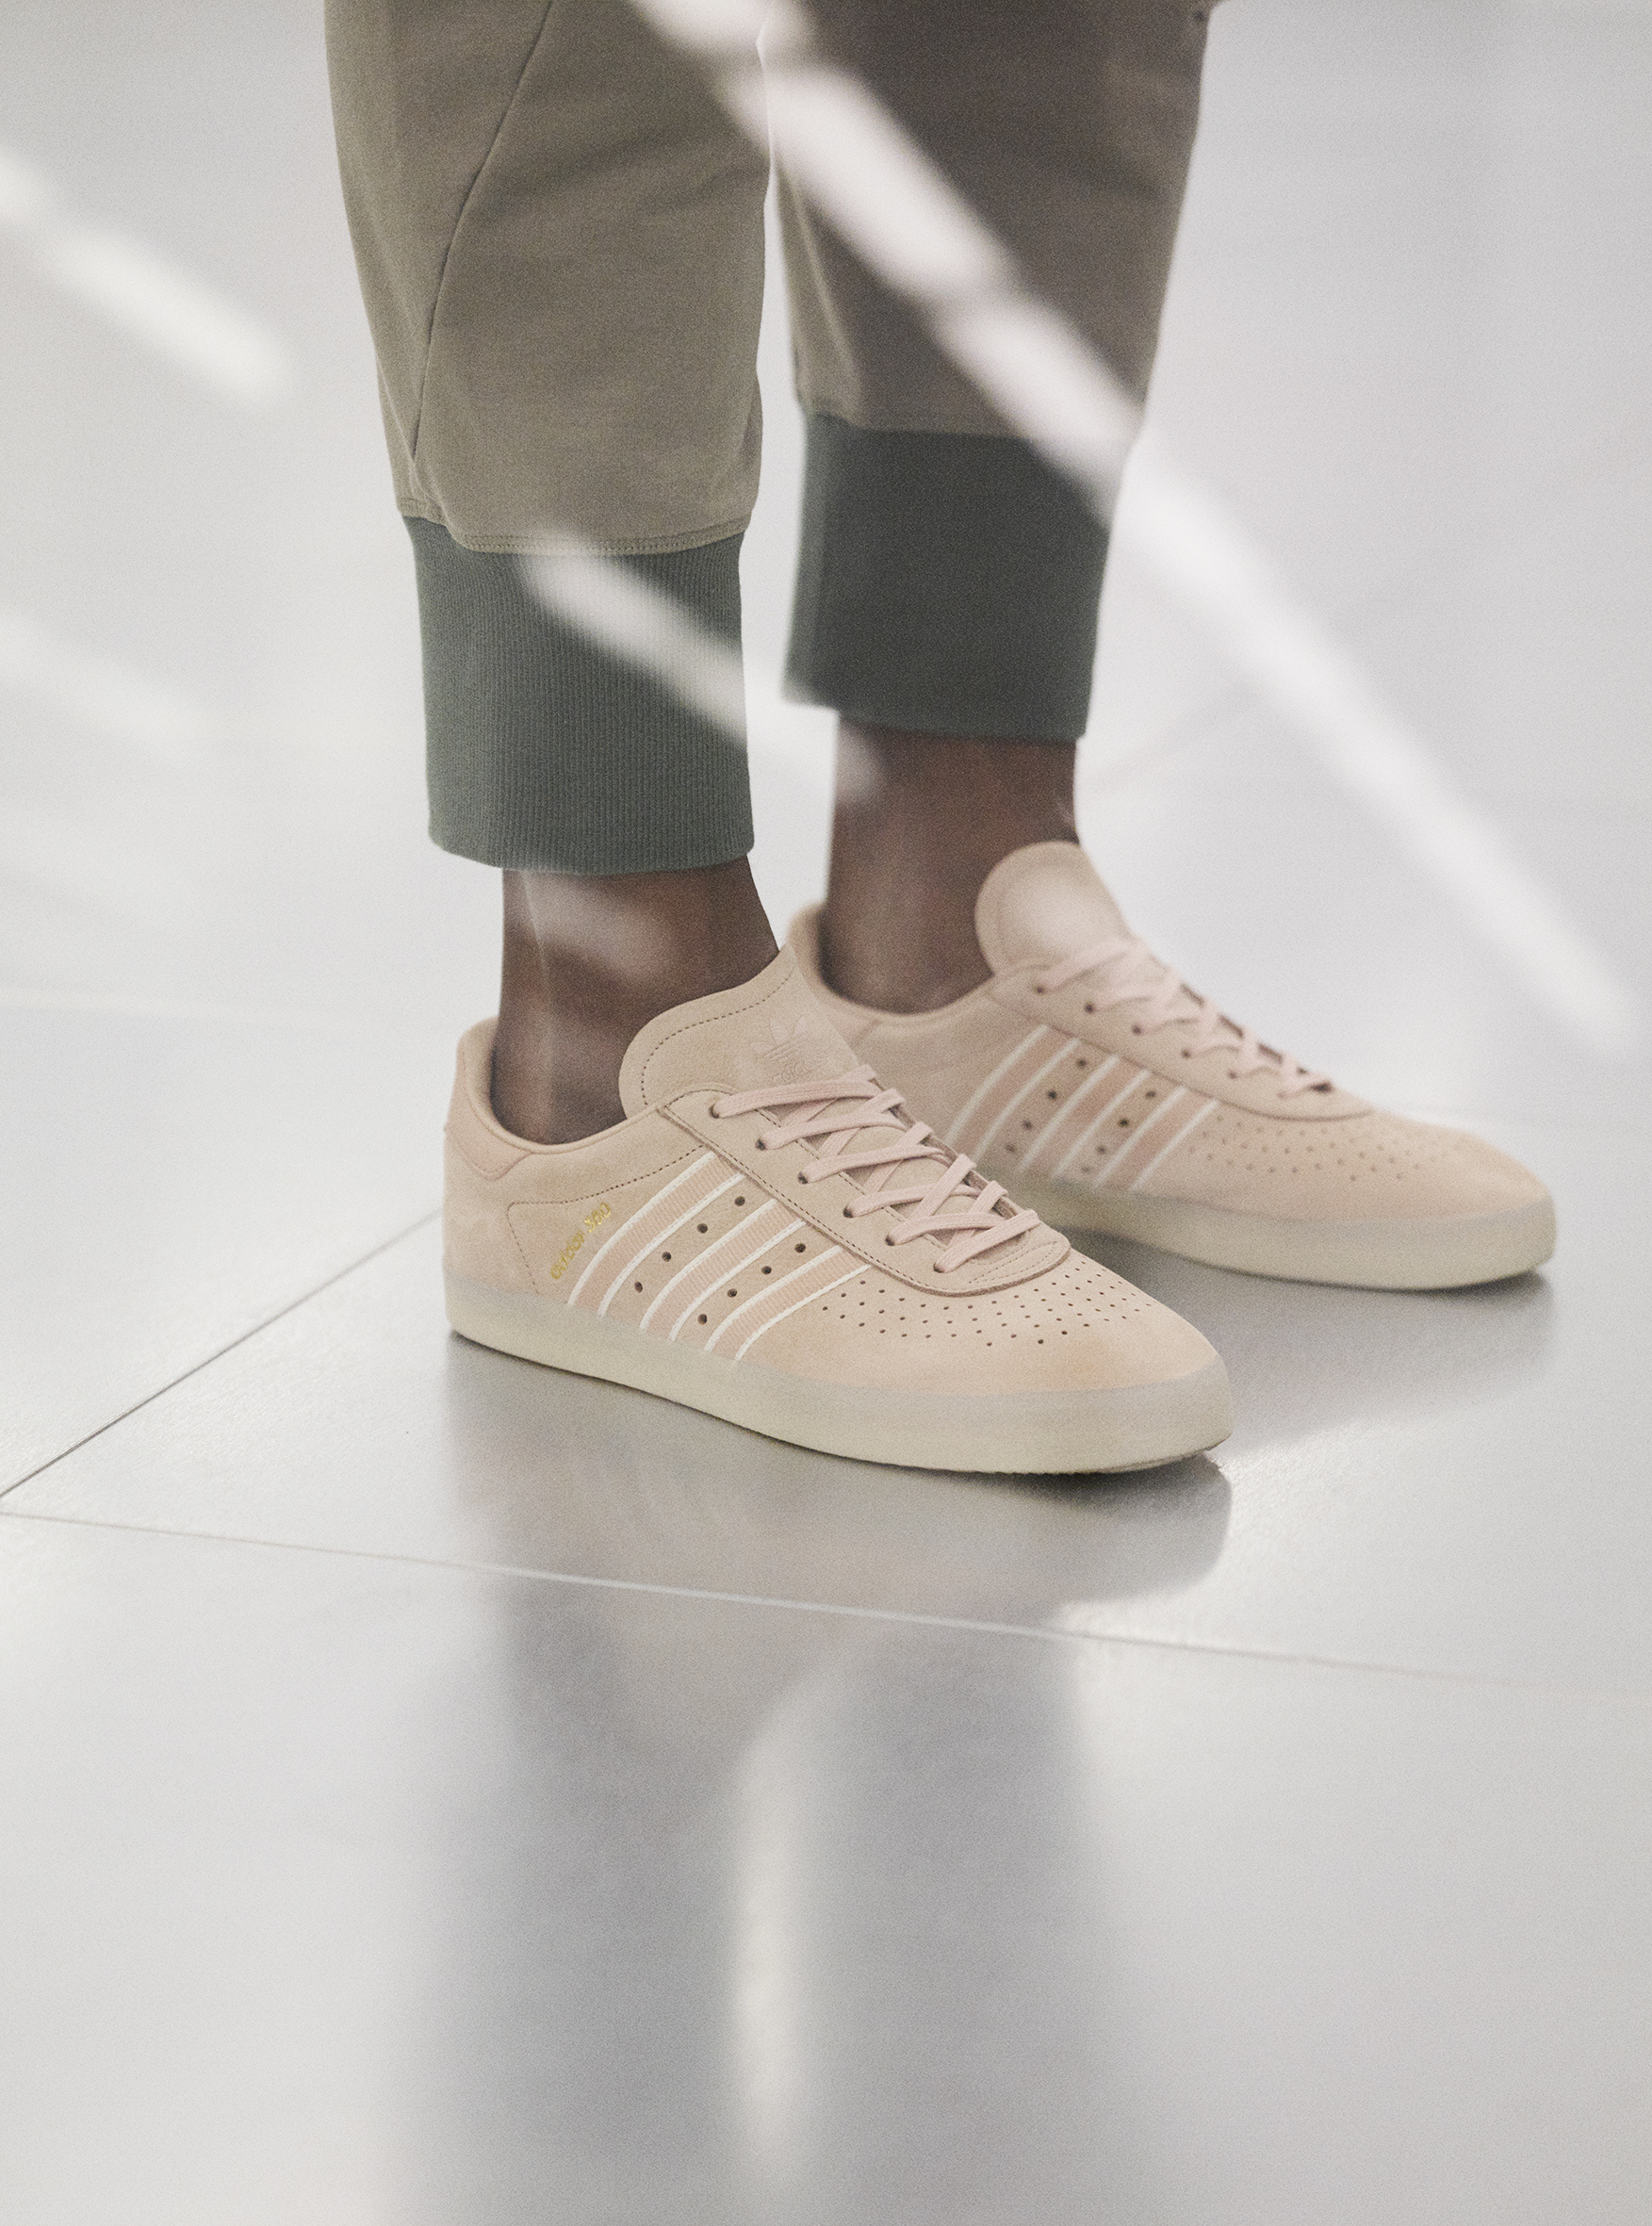 adidas x Oyster Holdings Image 09